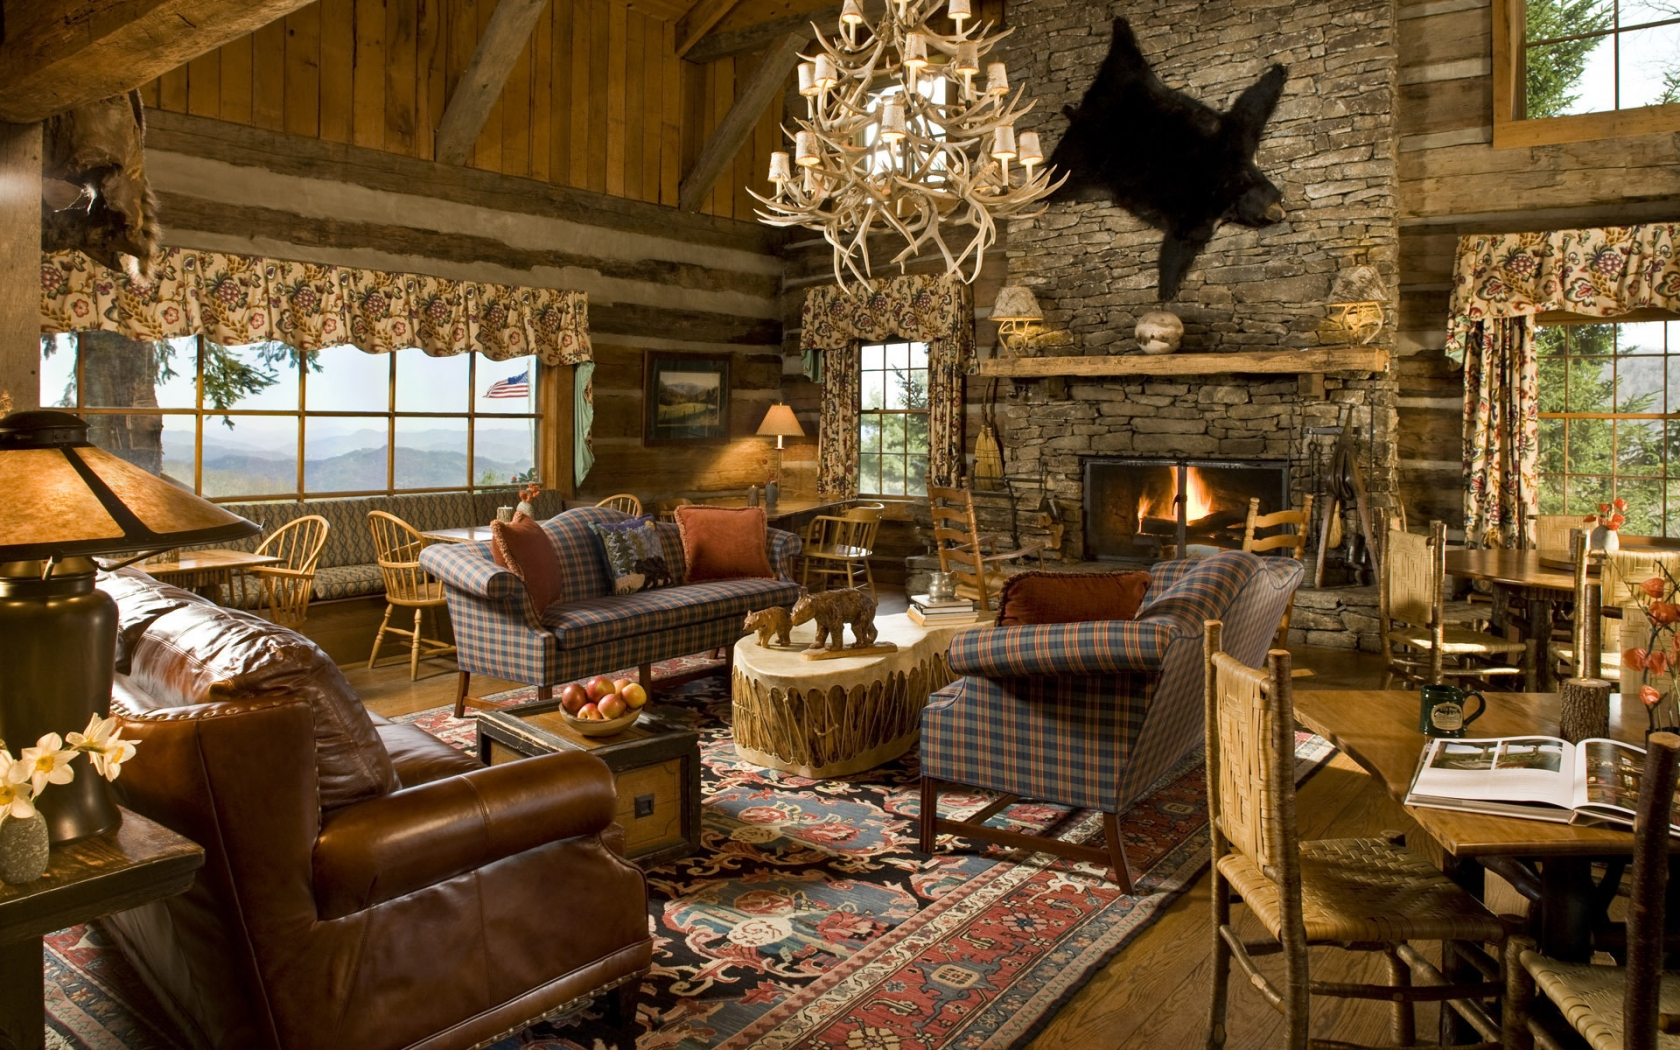 Rustic Decorating Ideas (View 5 of 10)